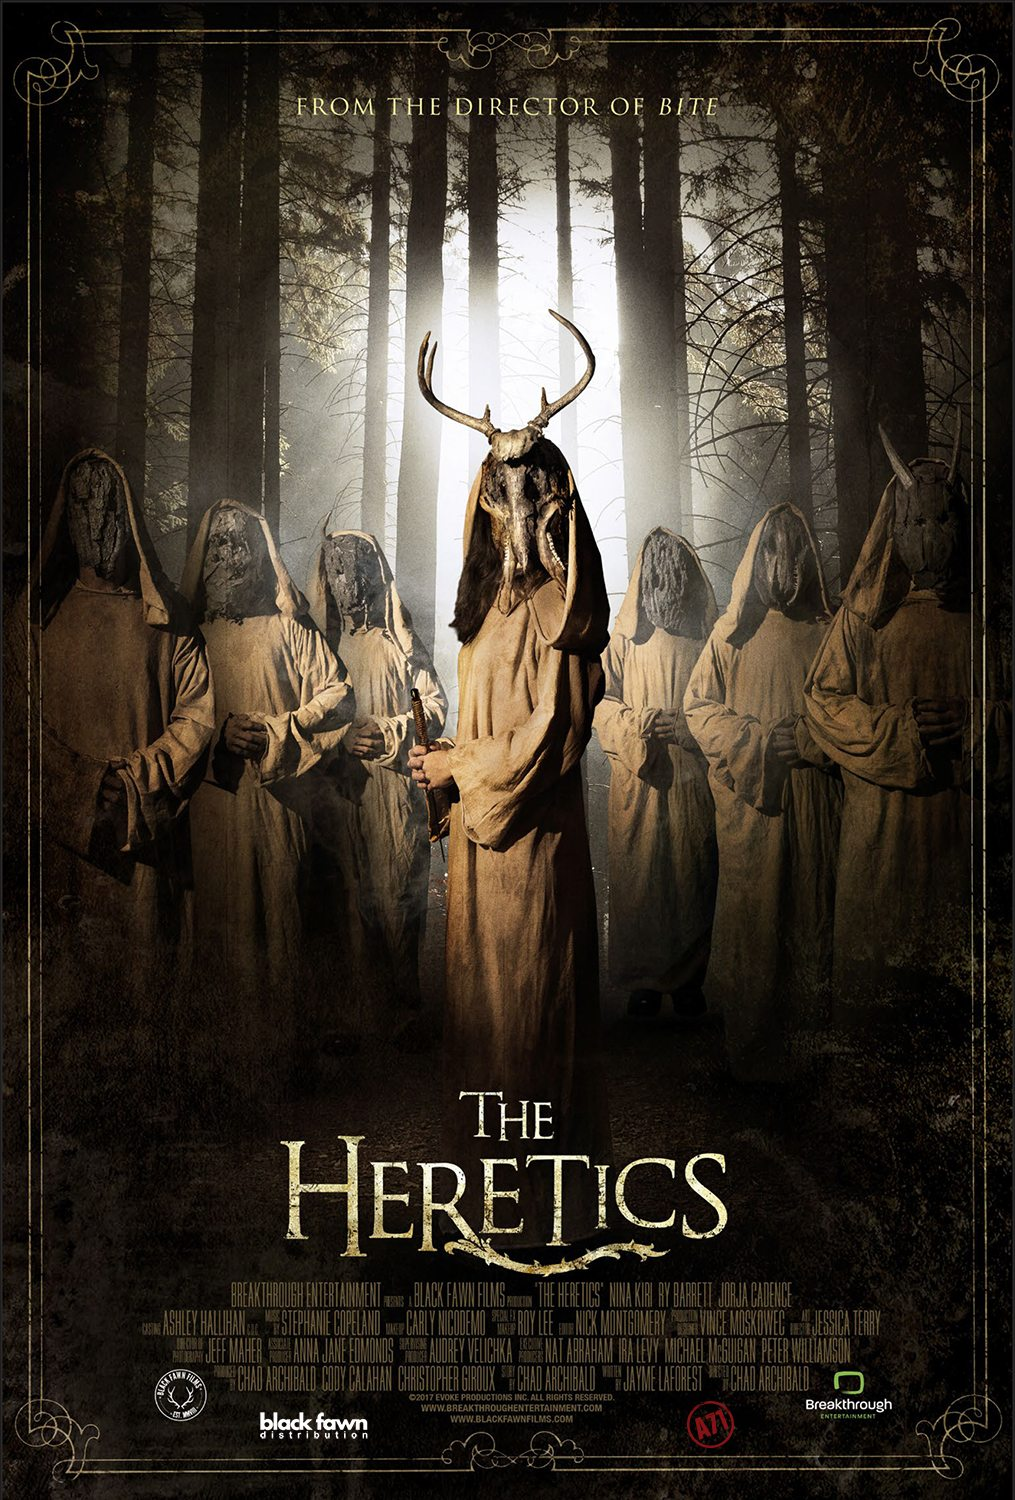 'The Heretics' – Coming in November